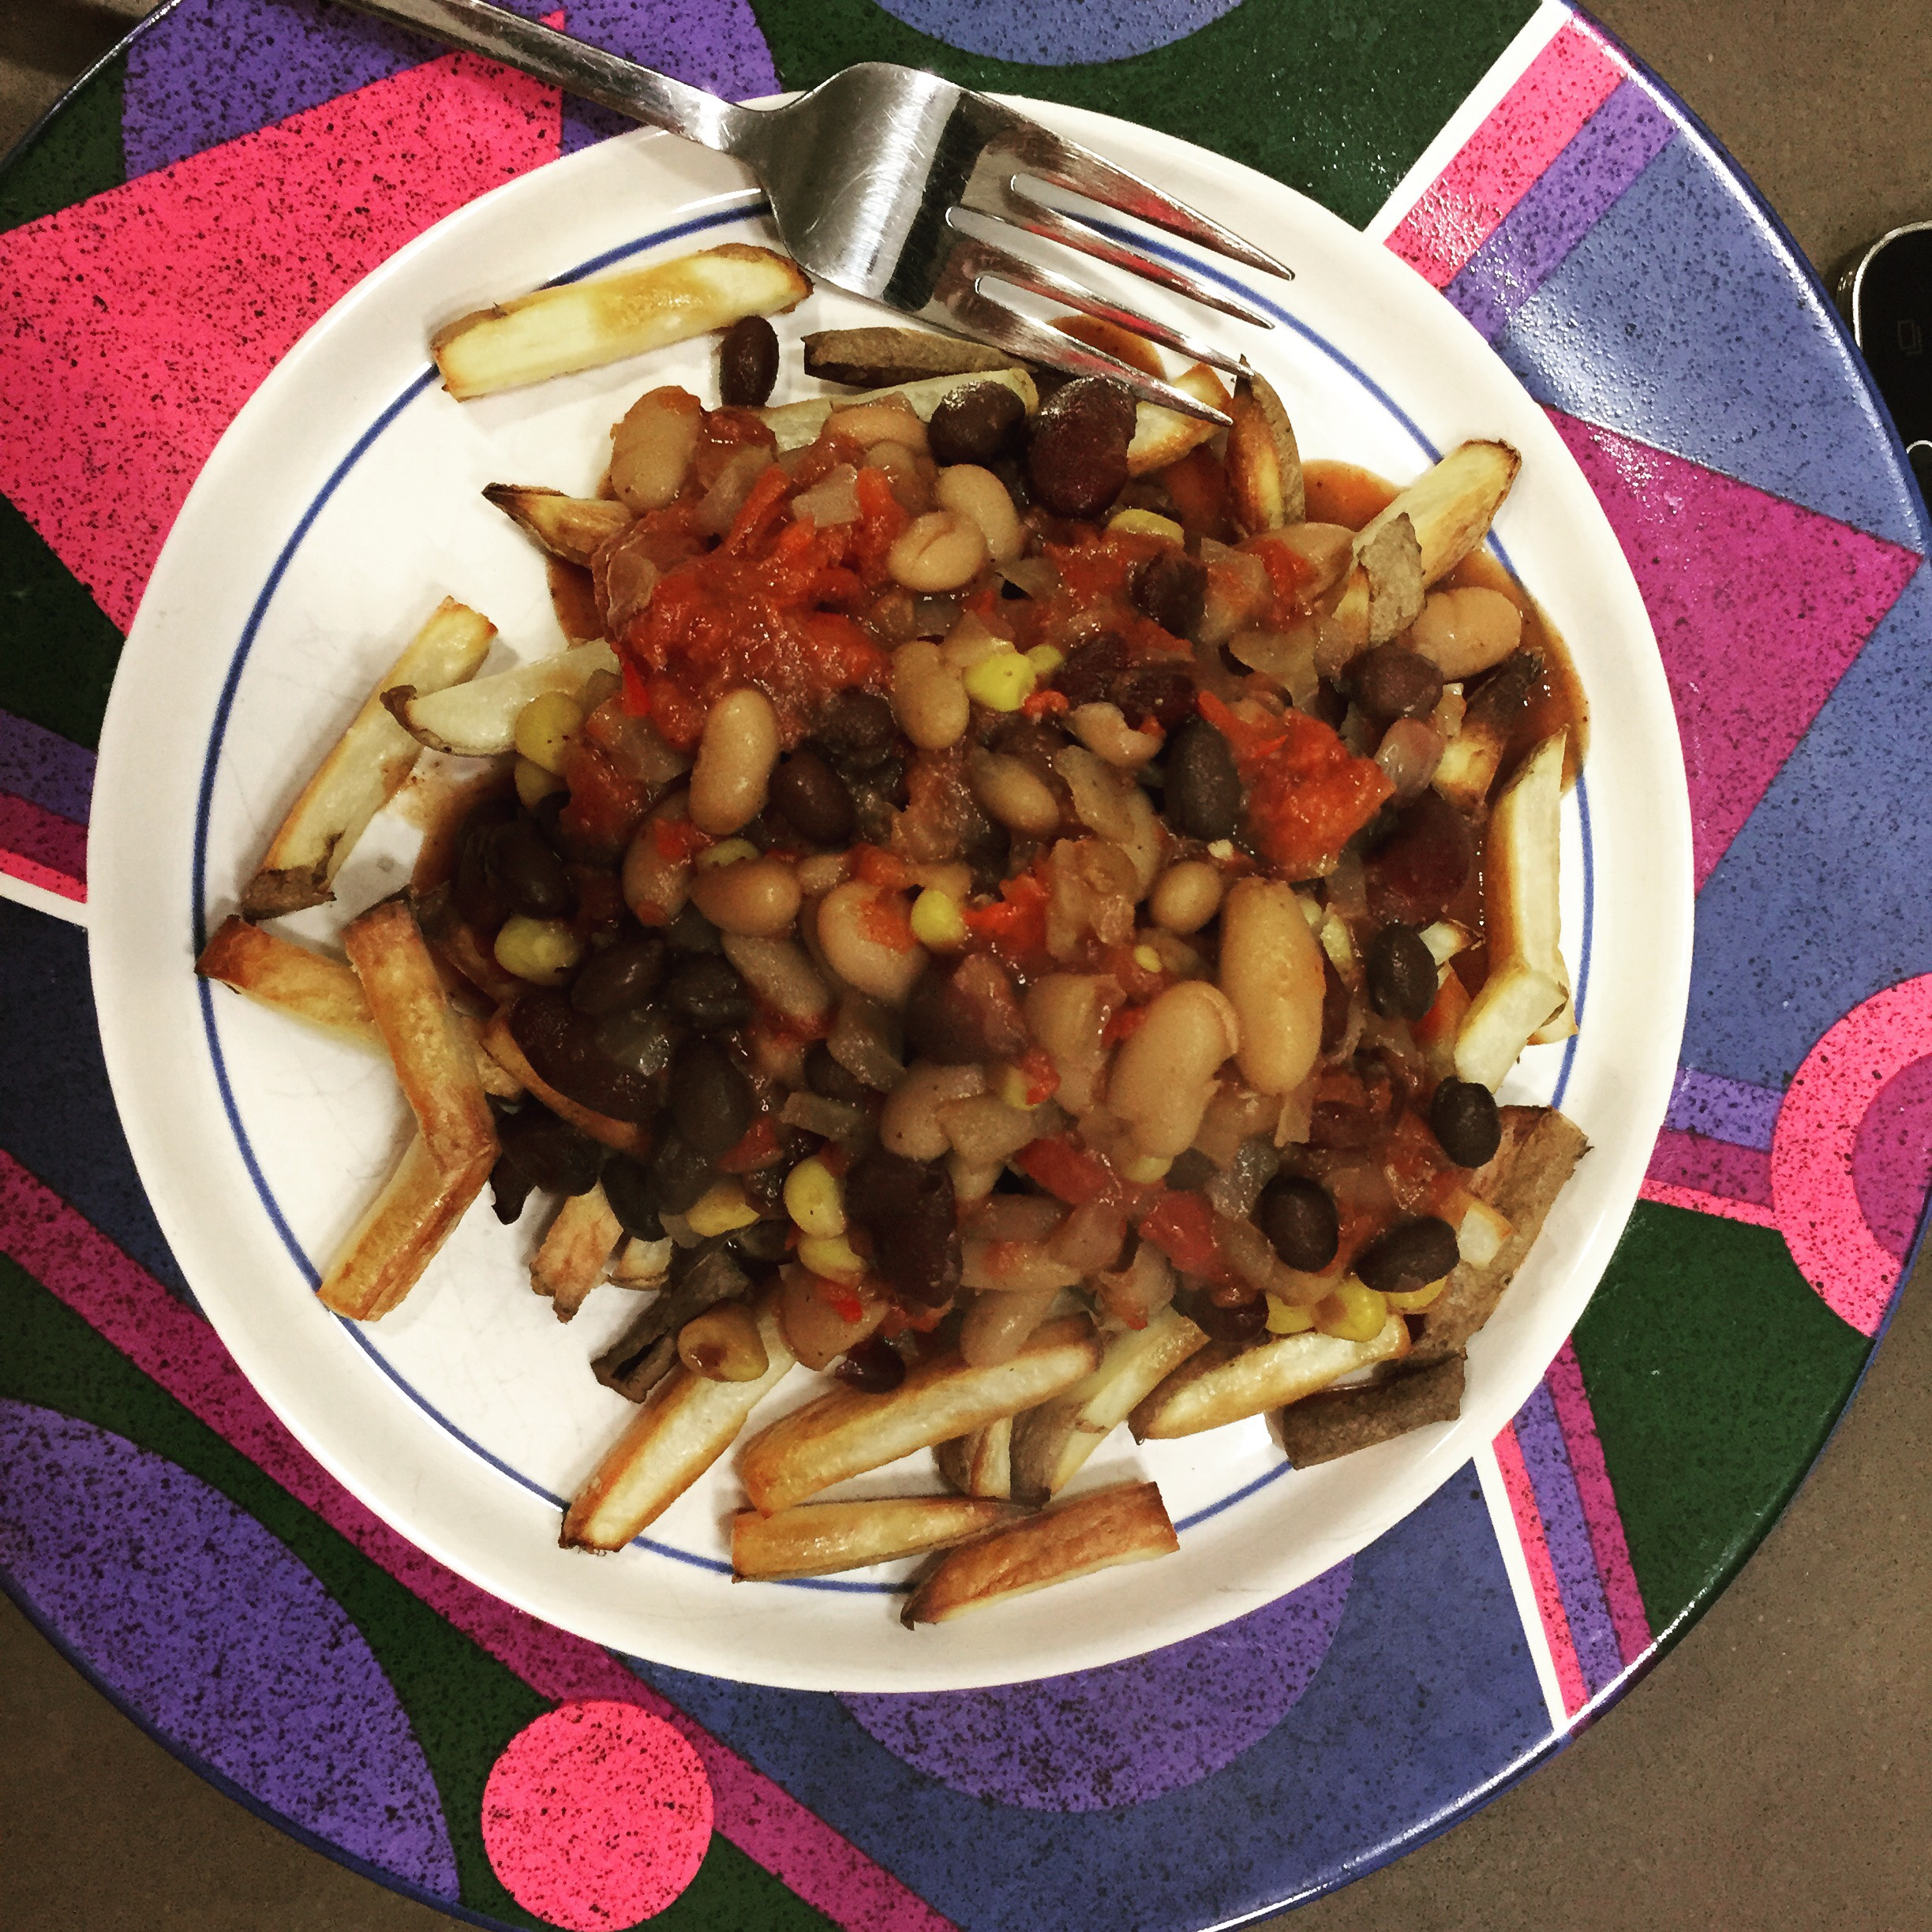 Guilt free chili fries!